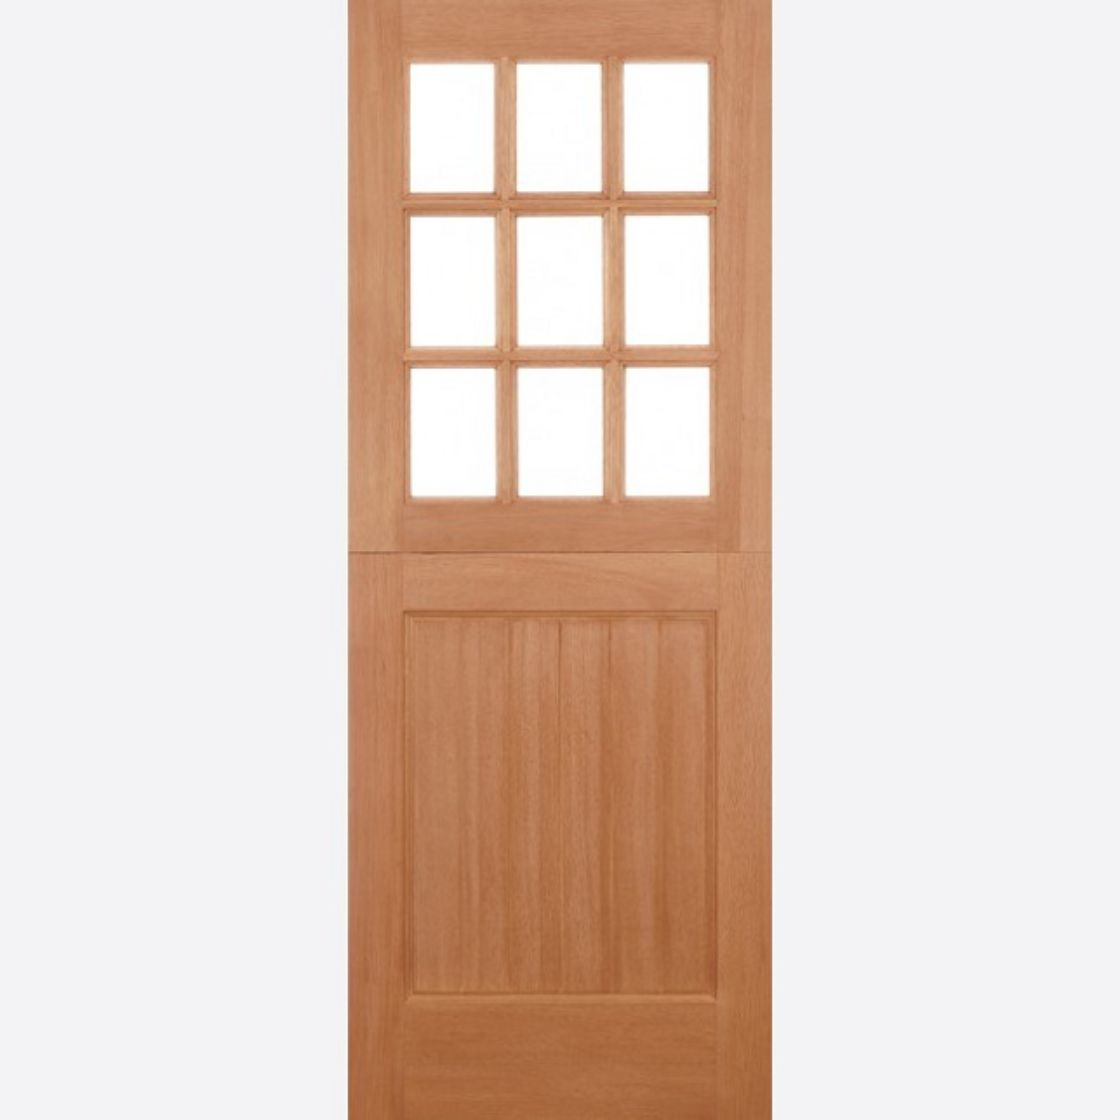 Half-Bow Hardwood Door - TO CLEAR